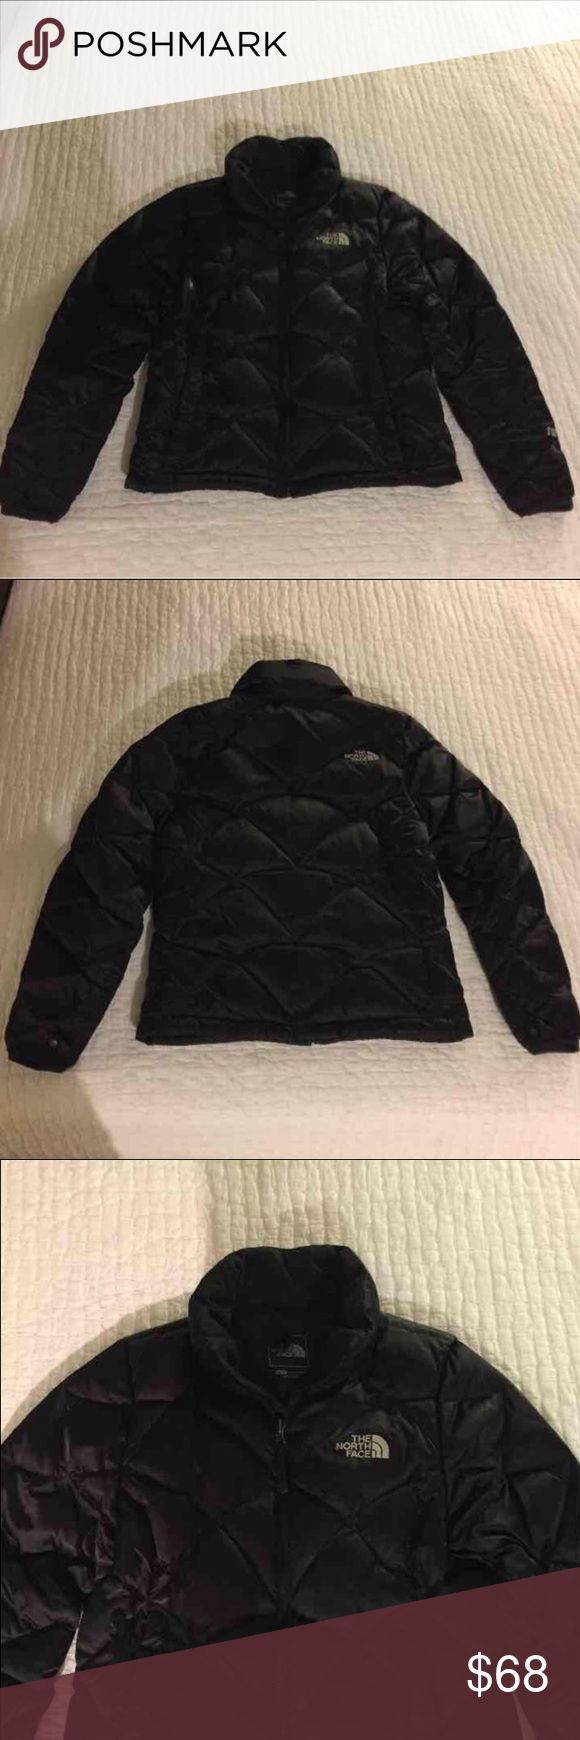 SALE!!!!!   Black The North Face coat New black 500 feather count The North Face winter coat.  Excellent condition. The North Face Jackets & Coats Puffers